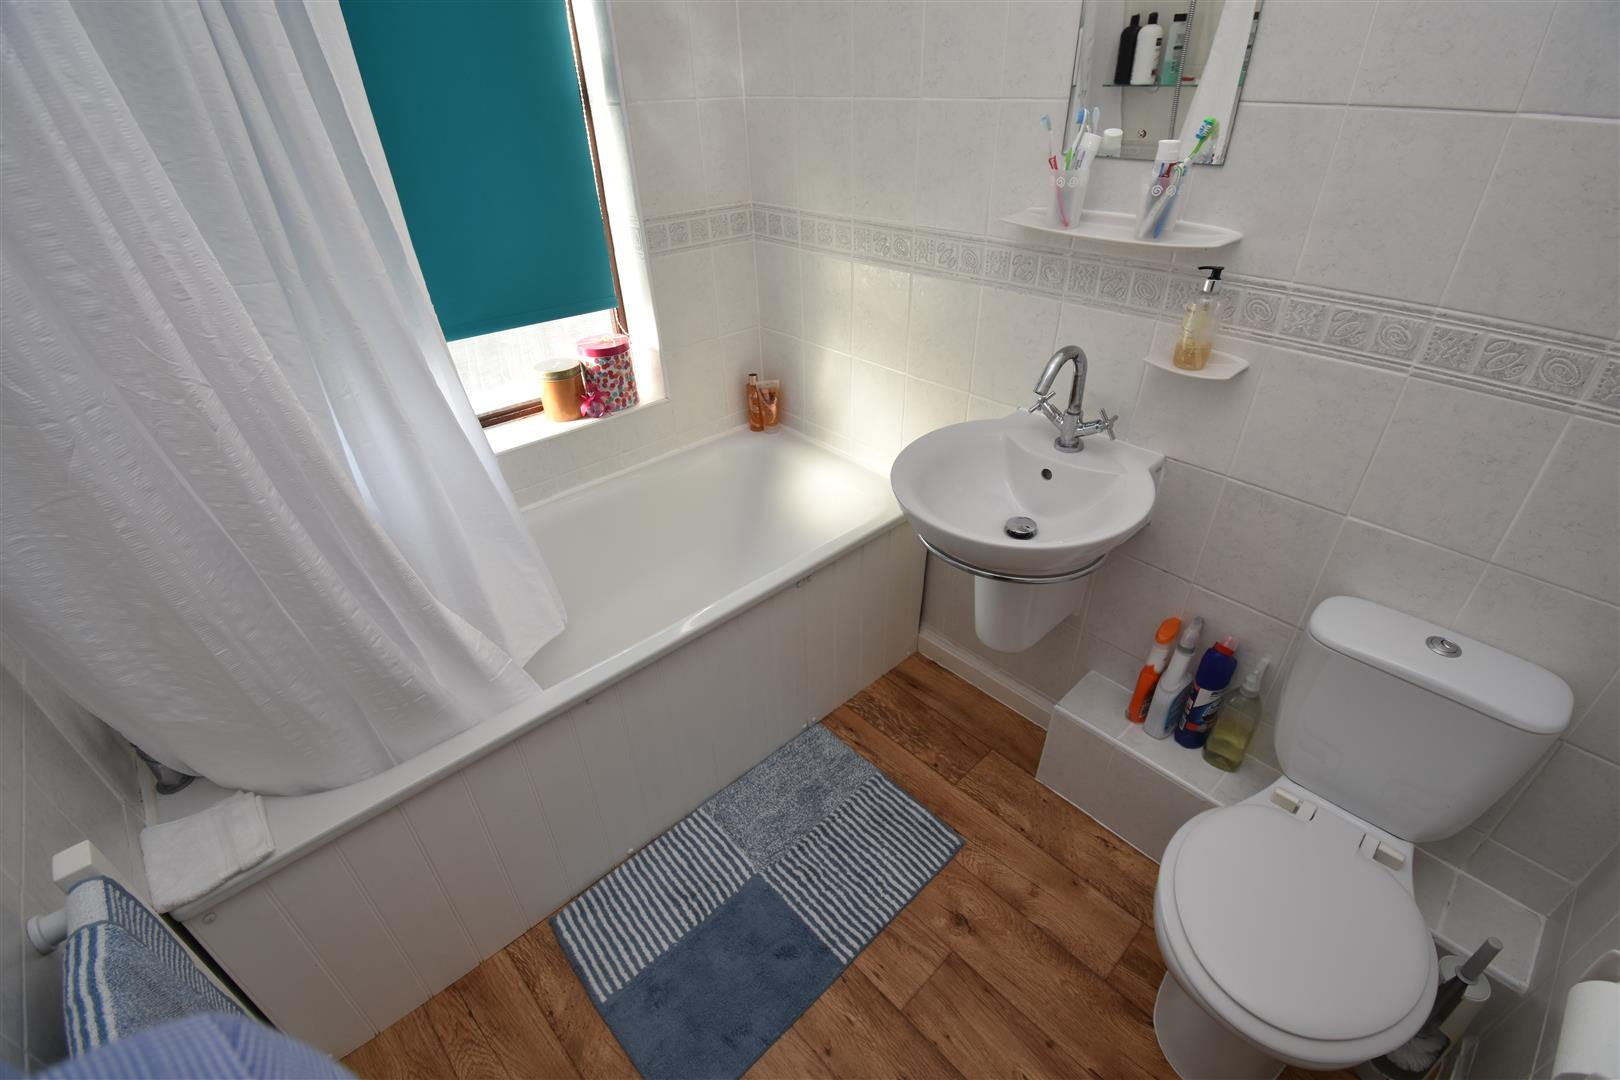 3 bed house for sale in Bromford Road, Hodge Hill, Birmingham B36 8HR 11